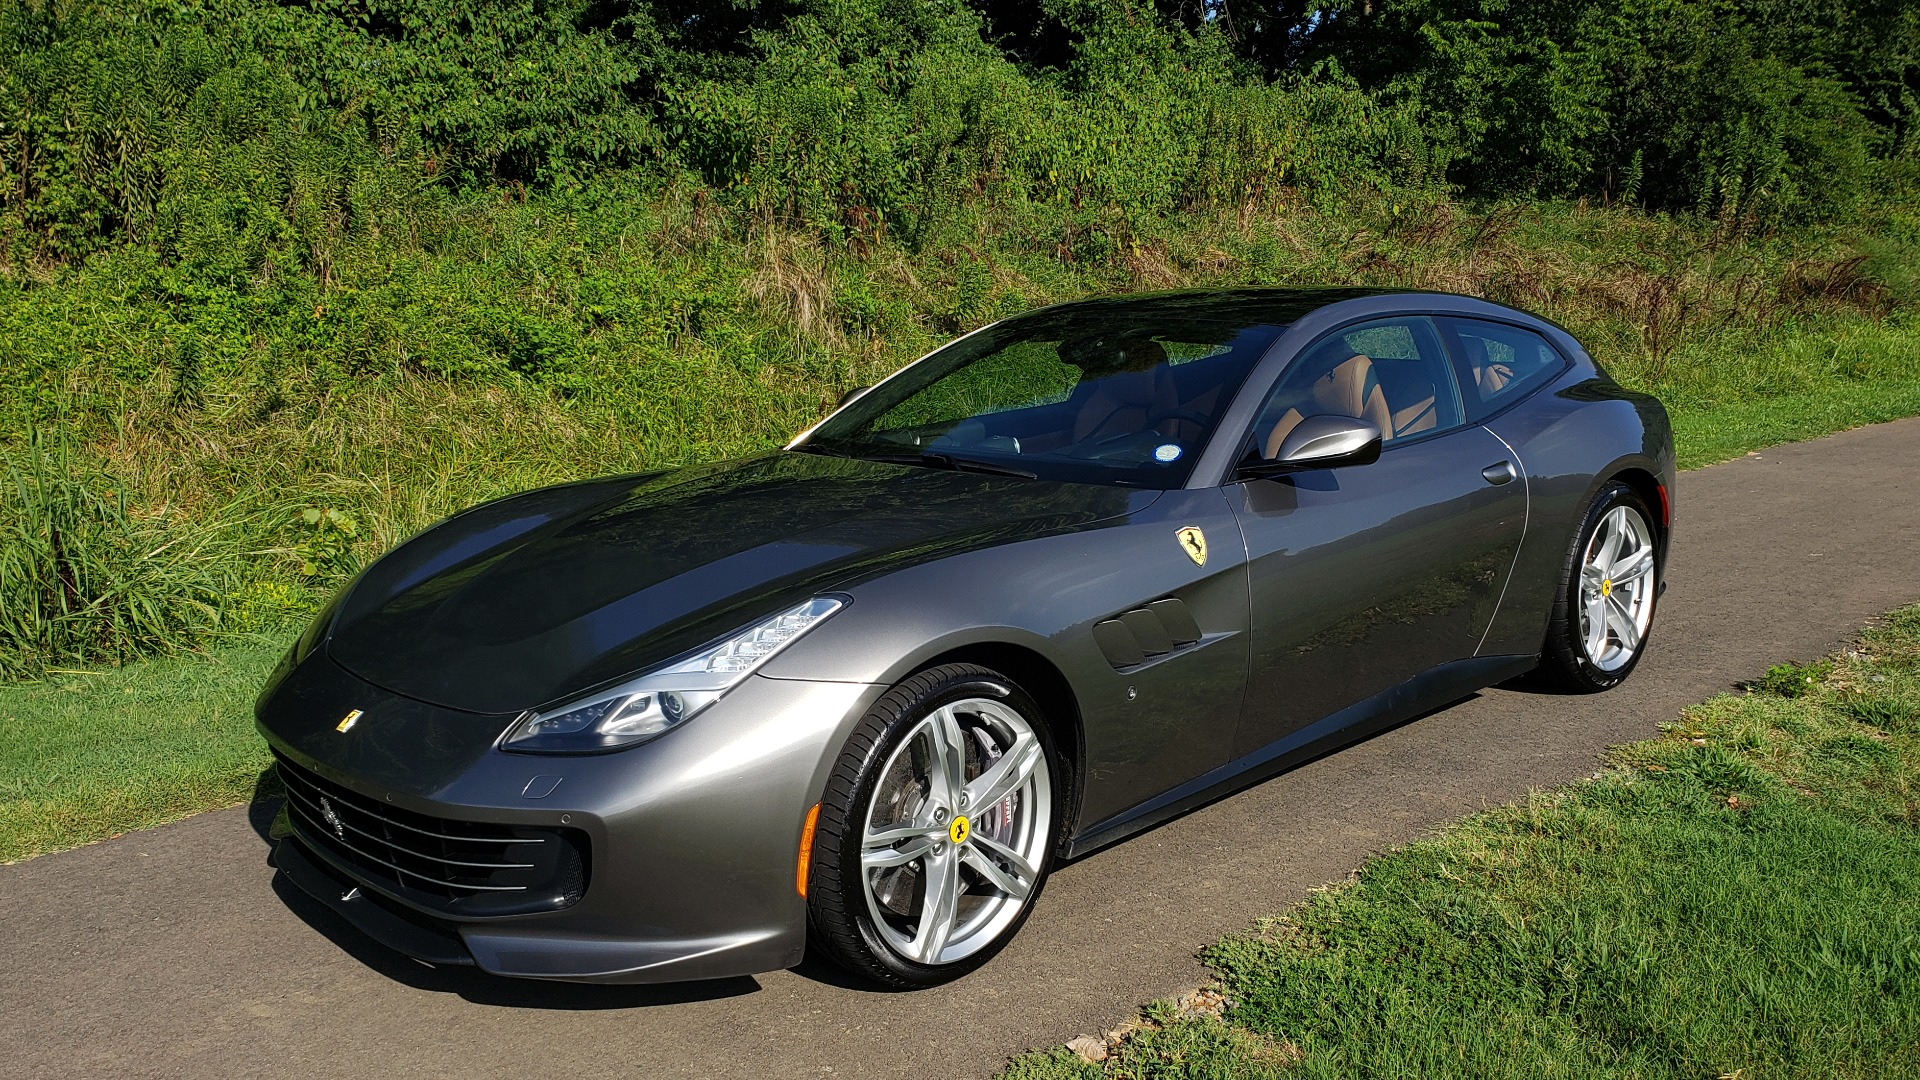 Used 2017 Ferrari GTC4 LUSSO AWD / PANO-ROOF / APPLE CAR PLAY / SUSP LIFT / JBL SOUND for sale $188,999 at Formula Imports in Charlotte NC 28227 3